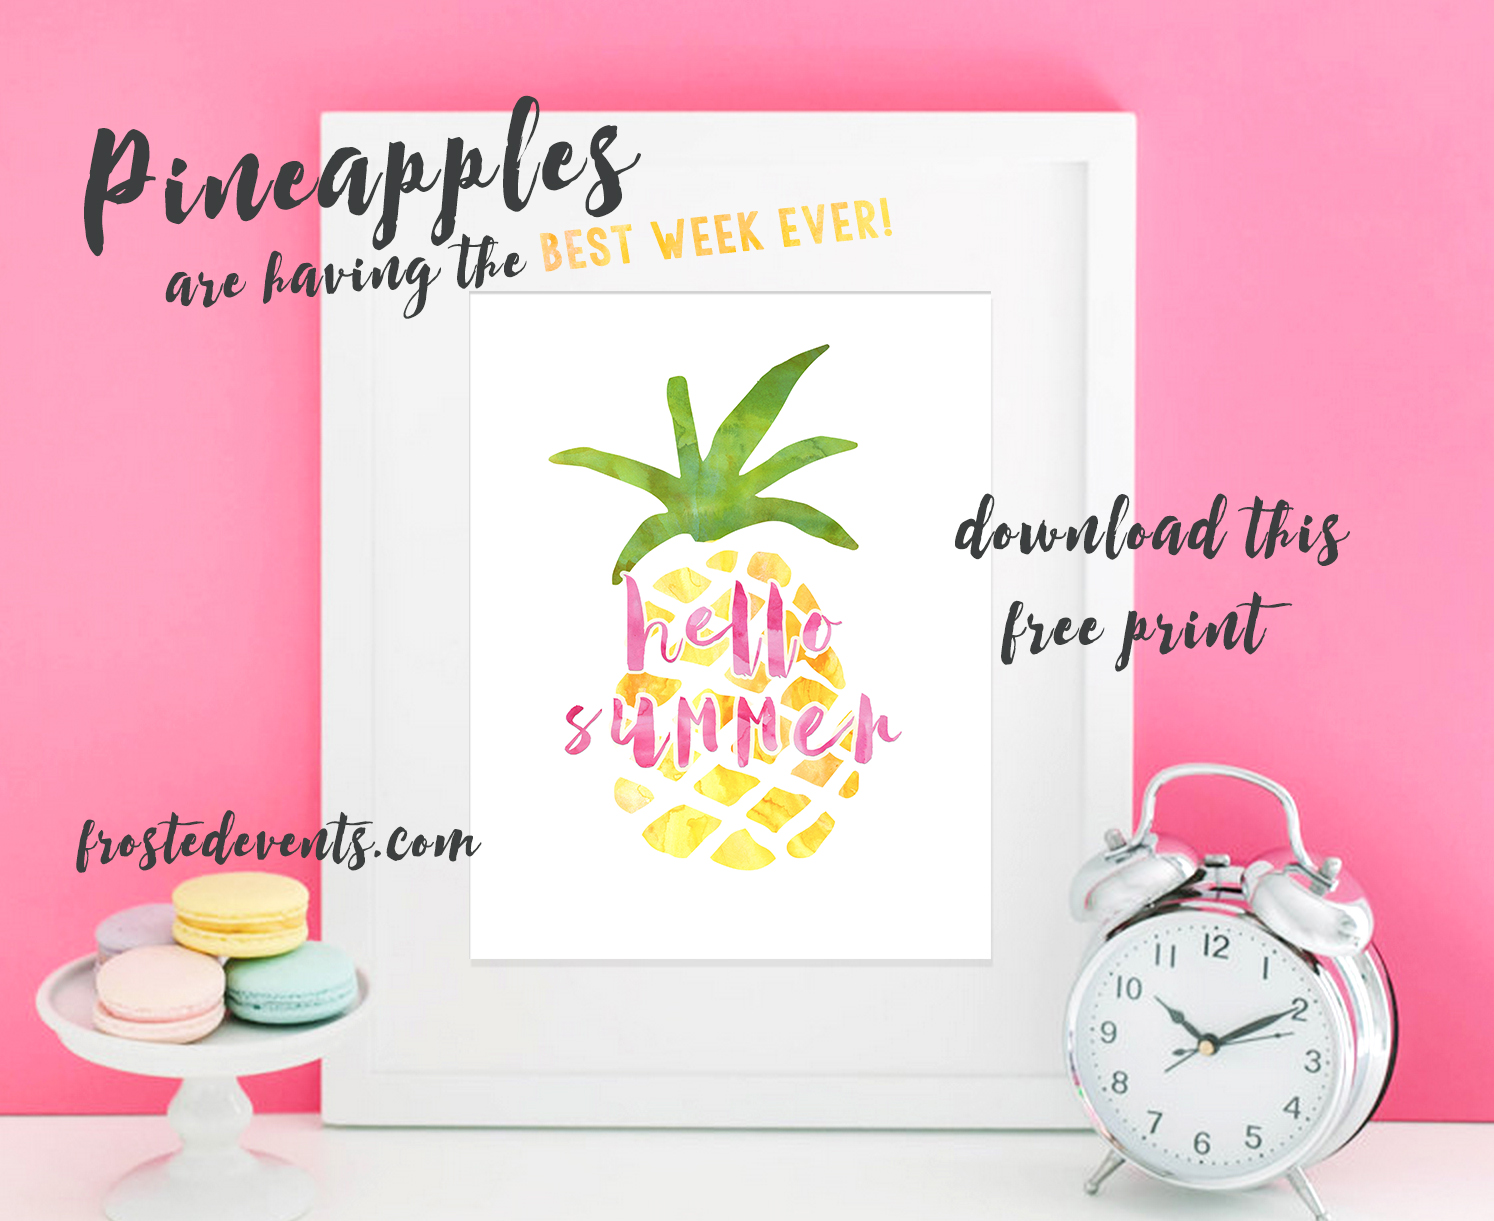 image about Free Printable Pineapple identified as Totally free Pineapple Print Adorable Printable